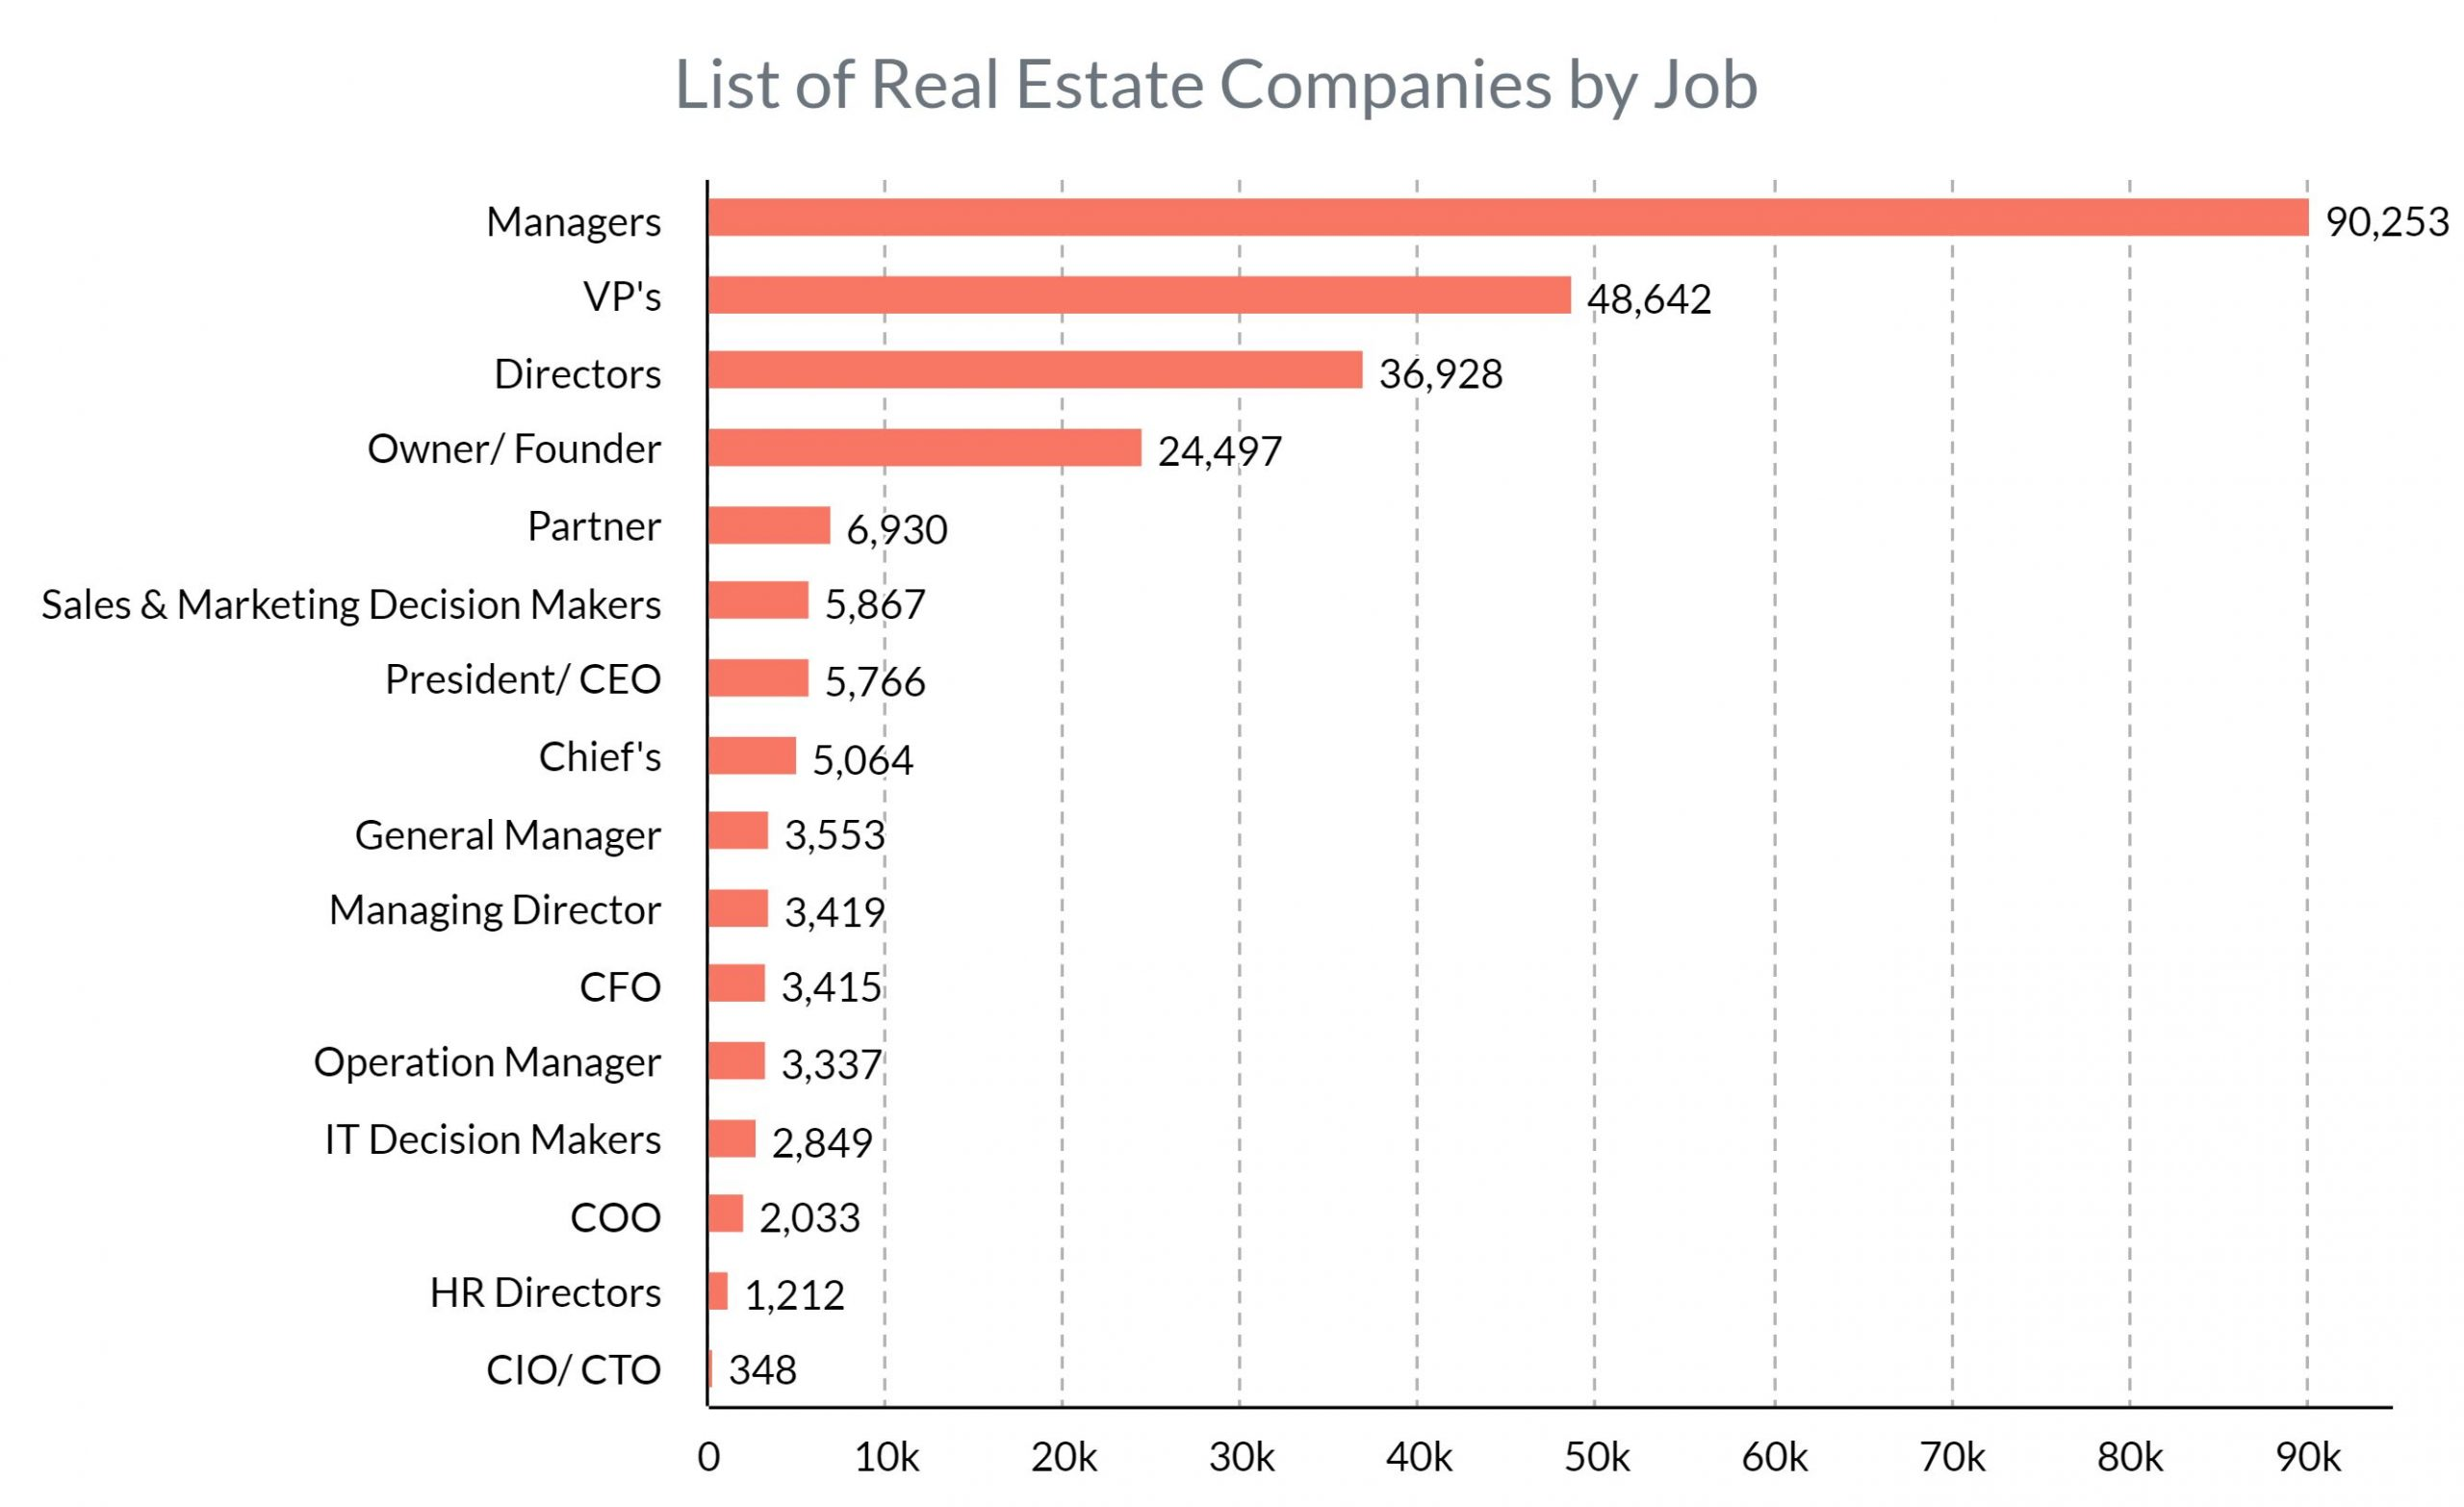 List of real estate companies by job